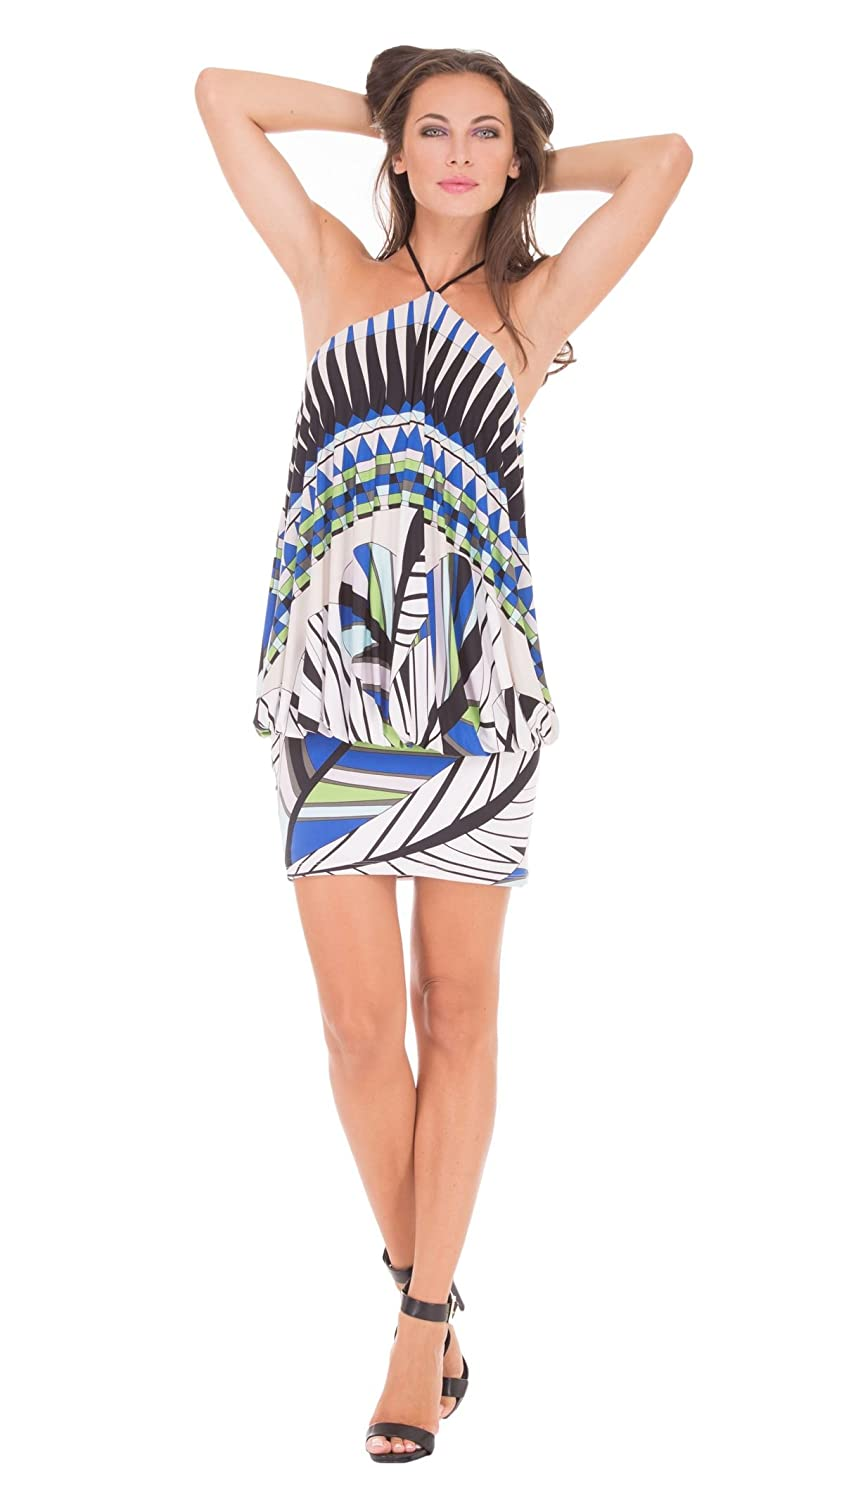 analili Rita Blue Green Ivory Abstract Print Blouson Halter Dress блуза analili цвет черный белый